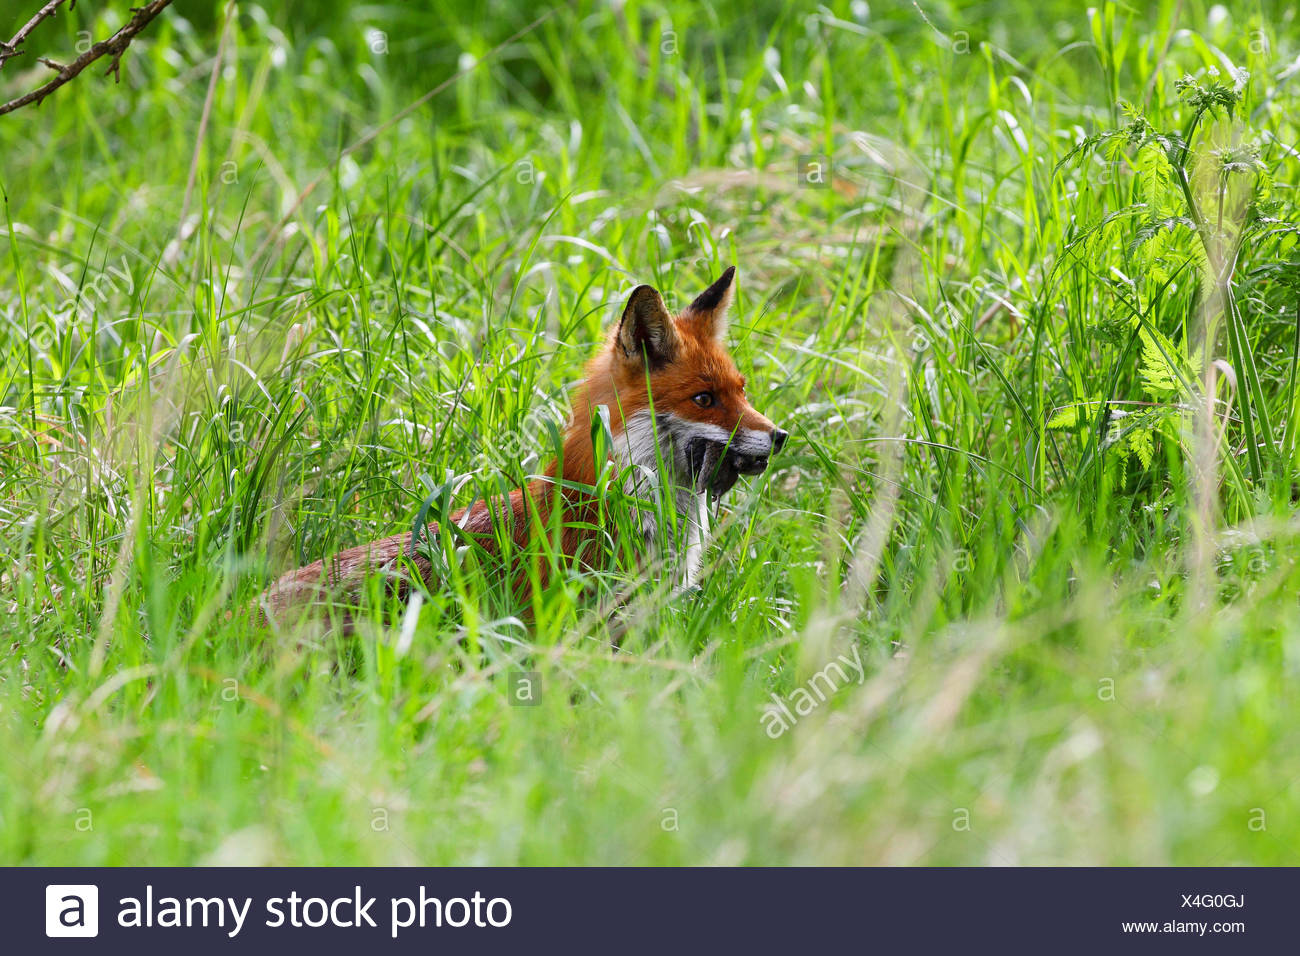 red fox (Vulpes vulpes), parent with caught mouse, Germany - Stock Image